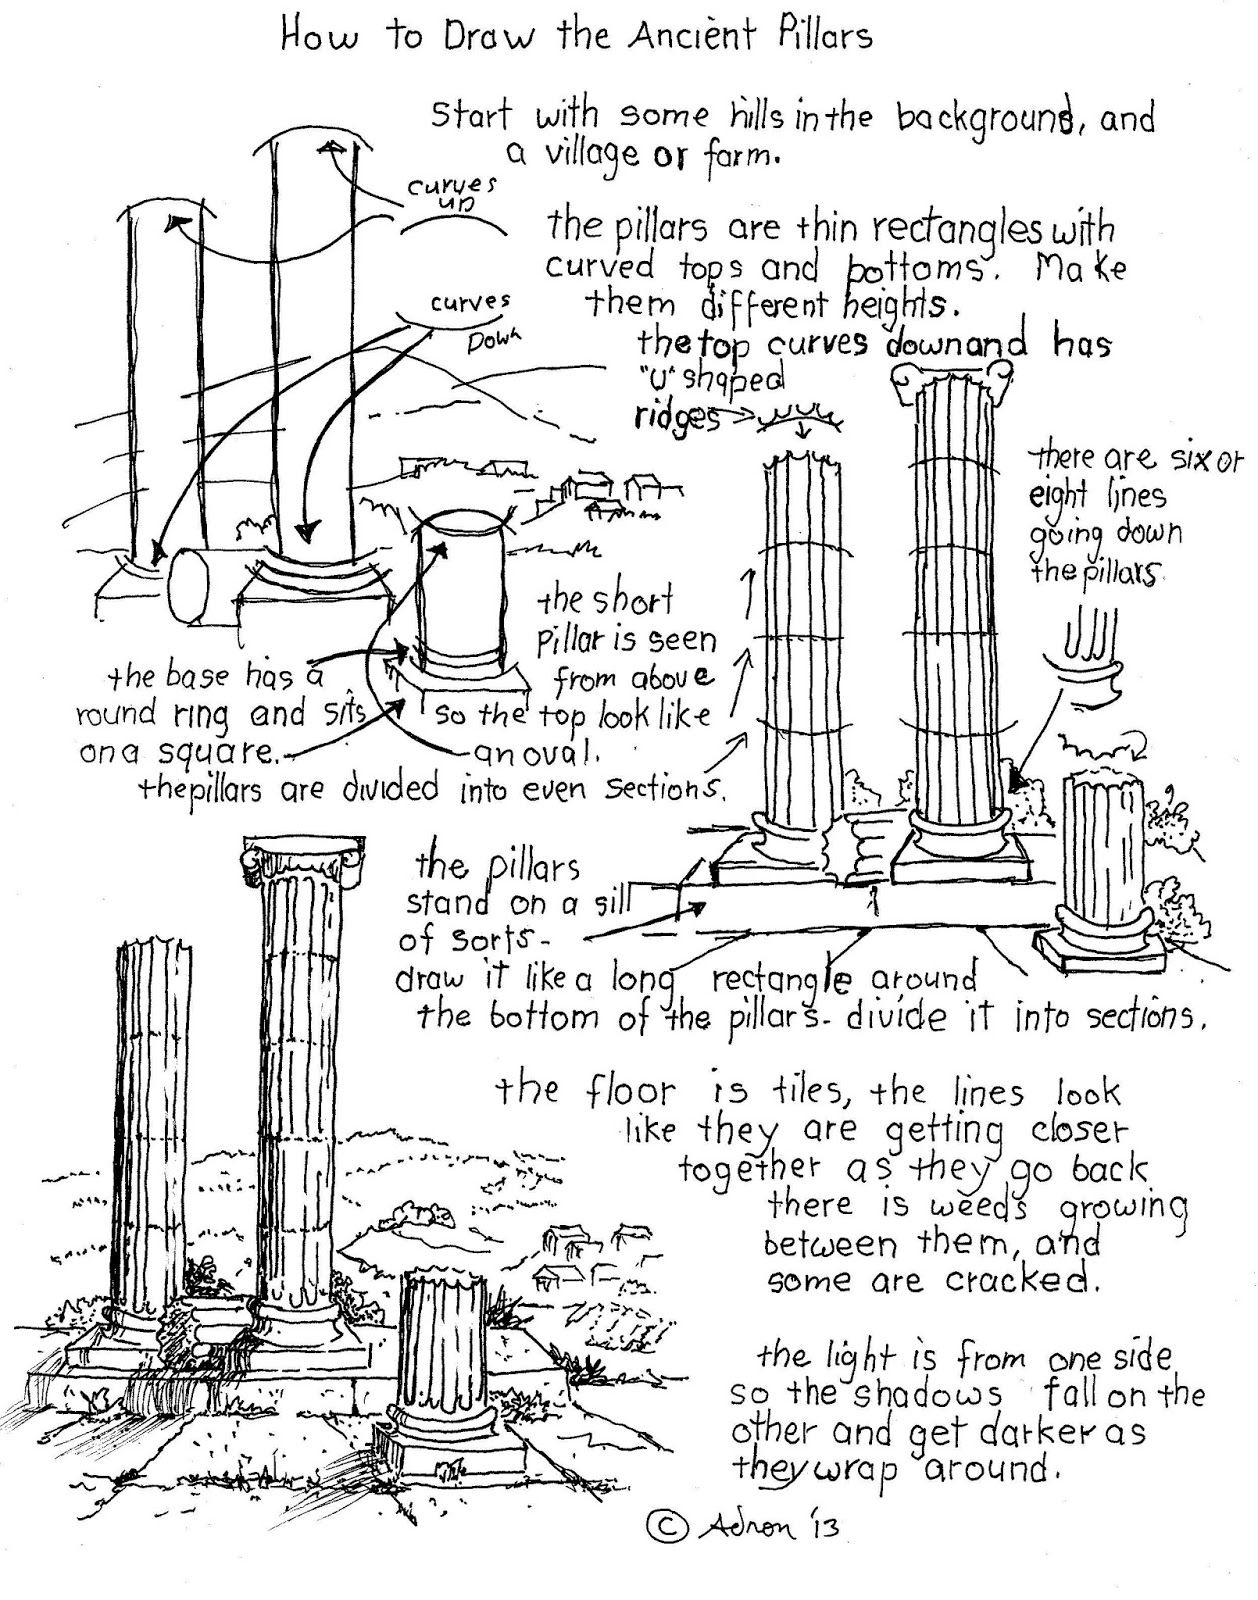 How To Draw The Ancient Roman Pillars Worksheet